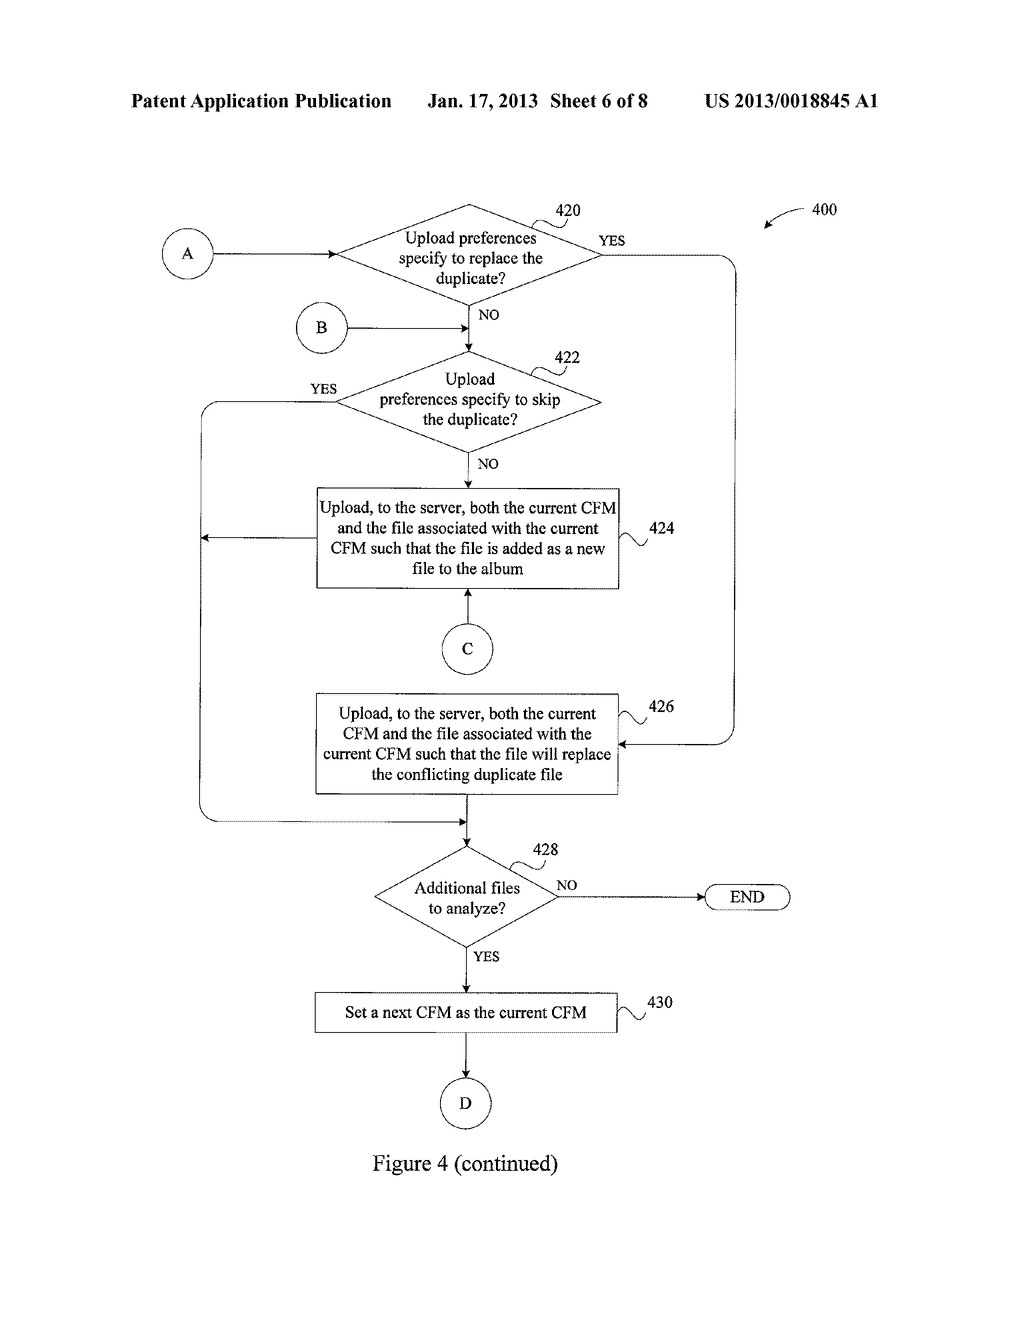 SYSTEM AND METHOD FOR MANAGING DUPLICATE FILE UPLOADSAANM Macaskill; DonAACI Los AltosAAST CAAACO USAAGP Macaskill; Don Los Altos CA USAANM Nichols; SamuelAACI Mountain ViewAAST CAAACO USAAGP Nichols; Samuel Mountain View CA US - diagram, schematic, and image 07